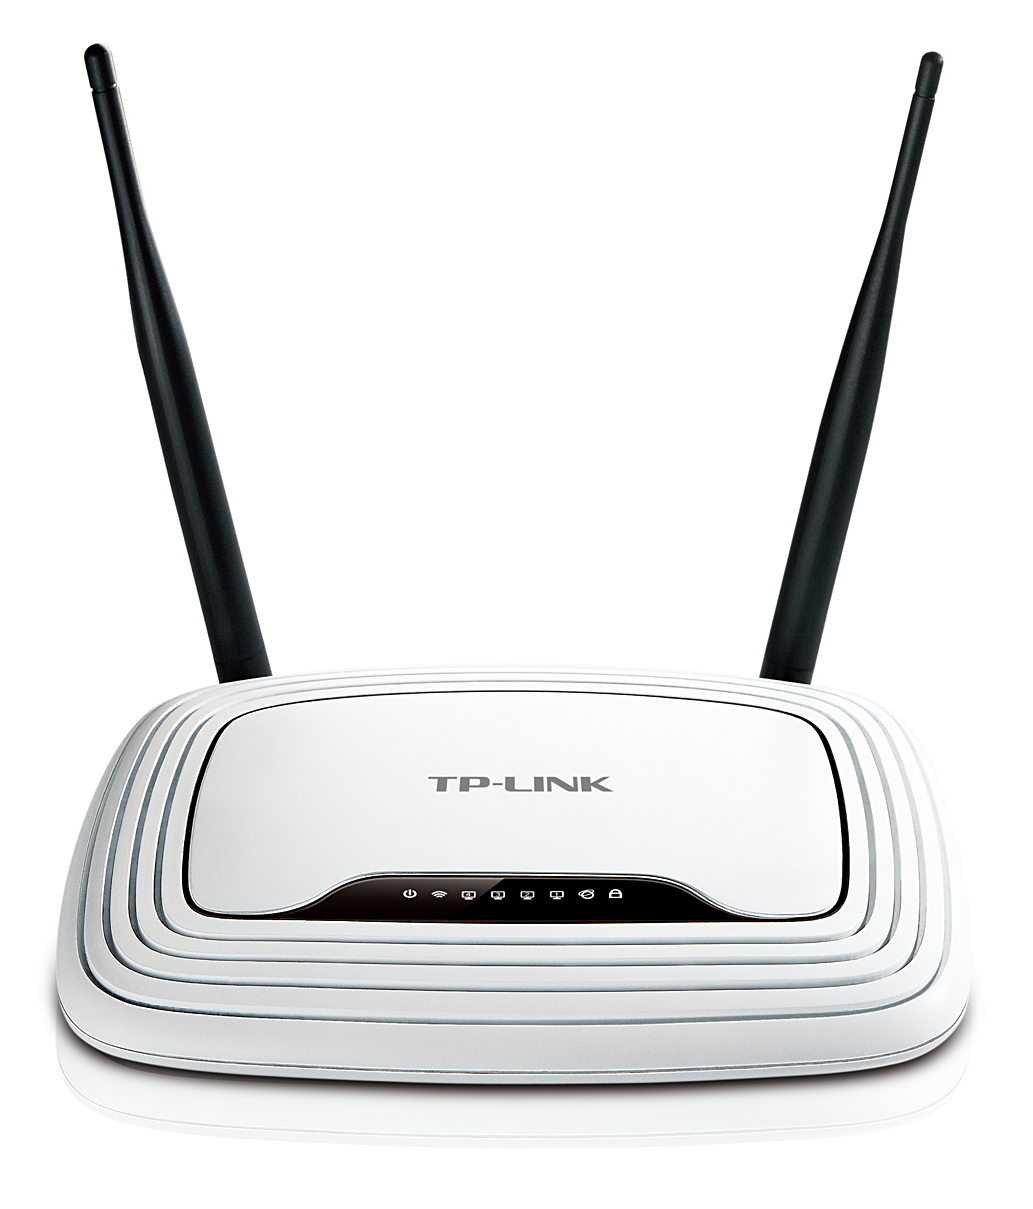 20774_6254_tp-link-300m-wireless-router-tl-wr841n